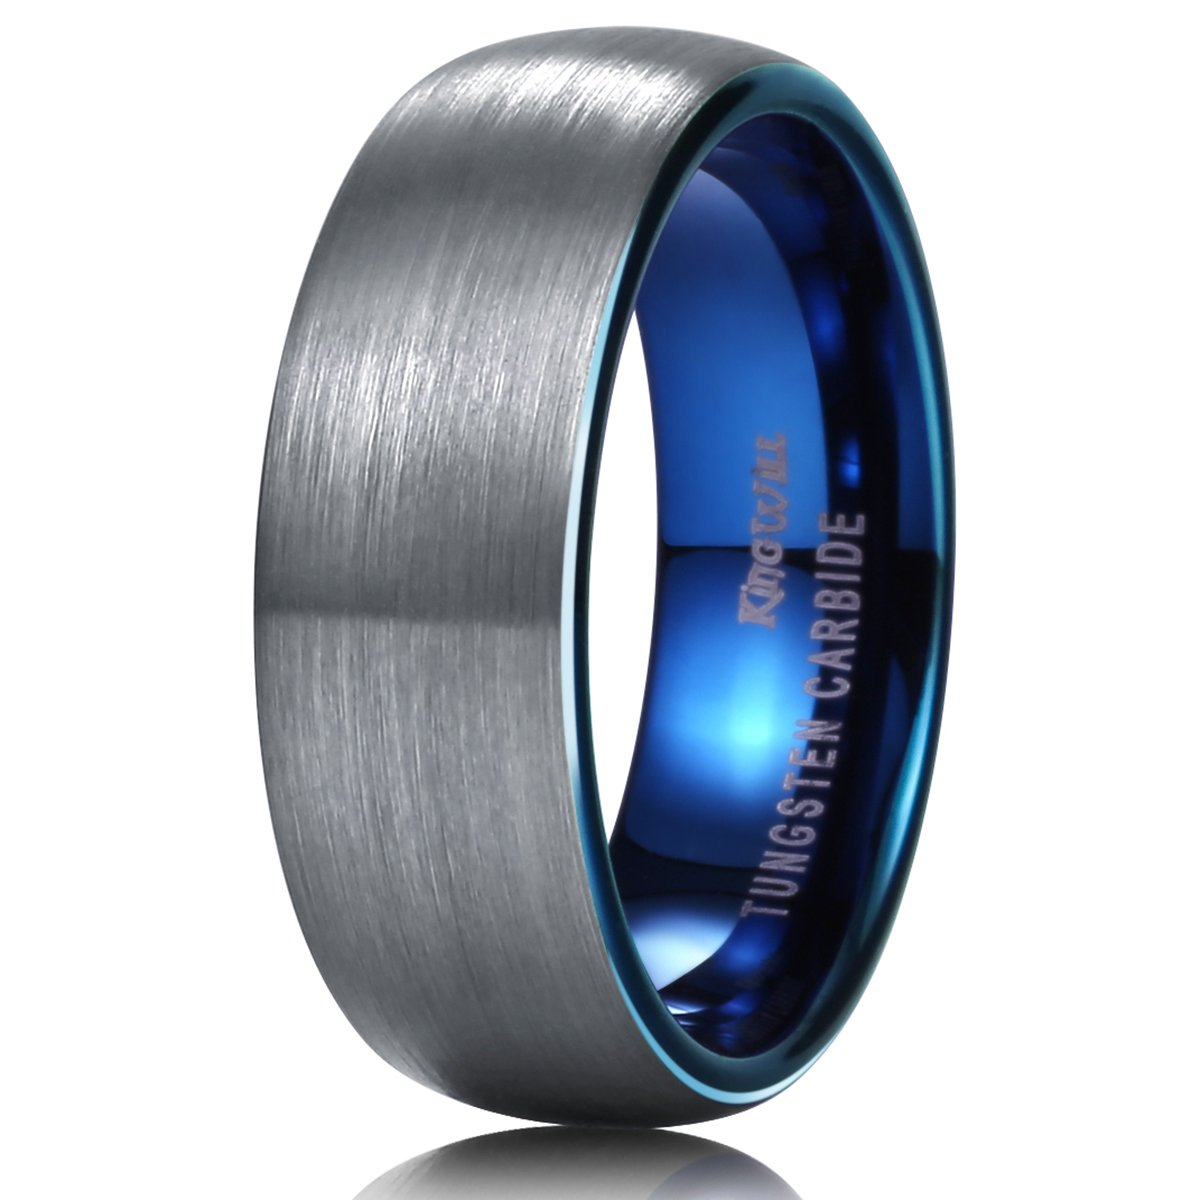 King Will DUO 7mm Blue Domed Tungsten Carbide Wedding Band Ring Brushed Polish Finished Comfort Fit9.5